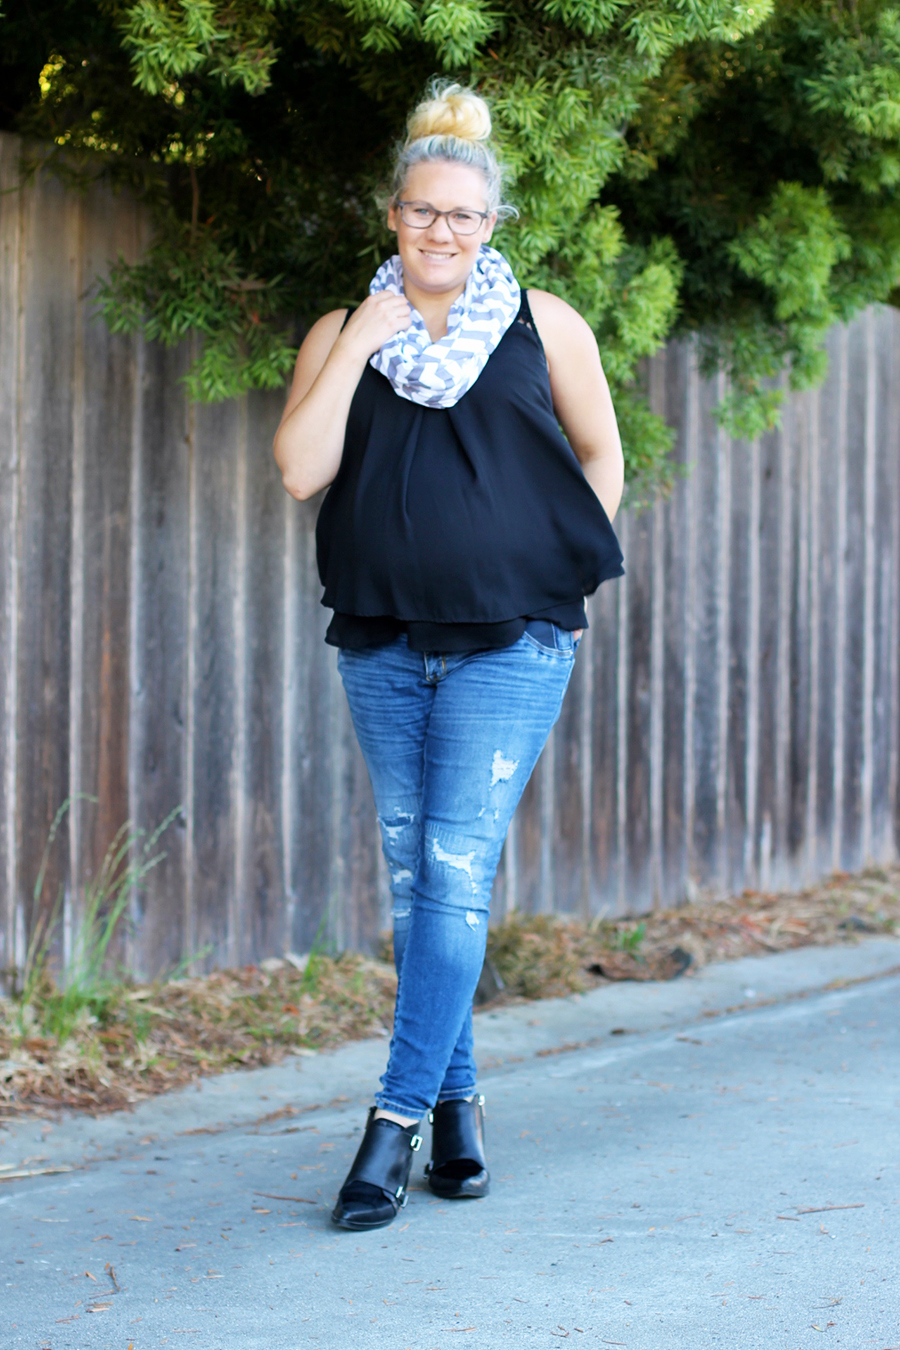 Le Tote Maternity-Maternity Style-Pregnancy Style-Maternity Subscription Box 9